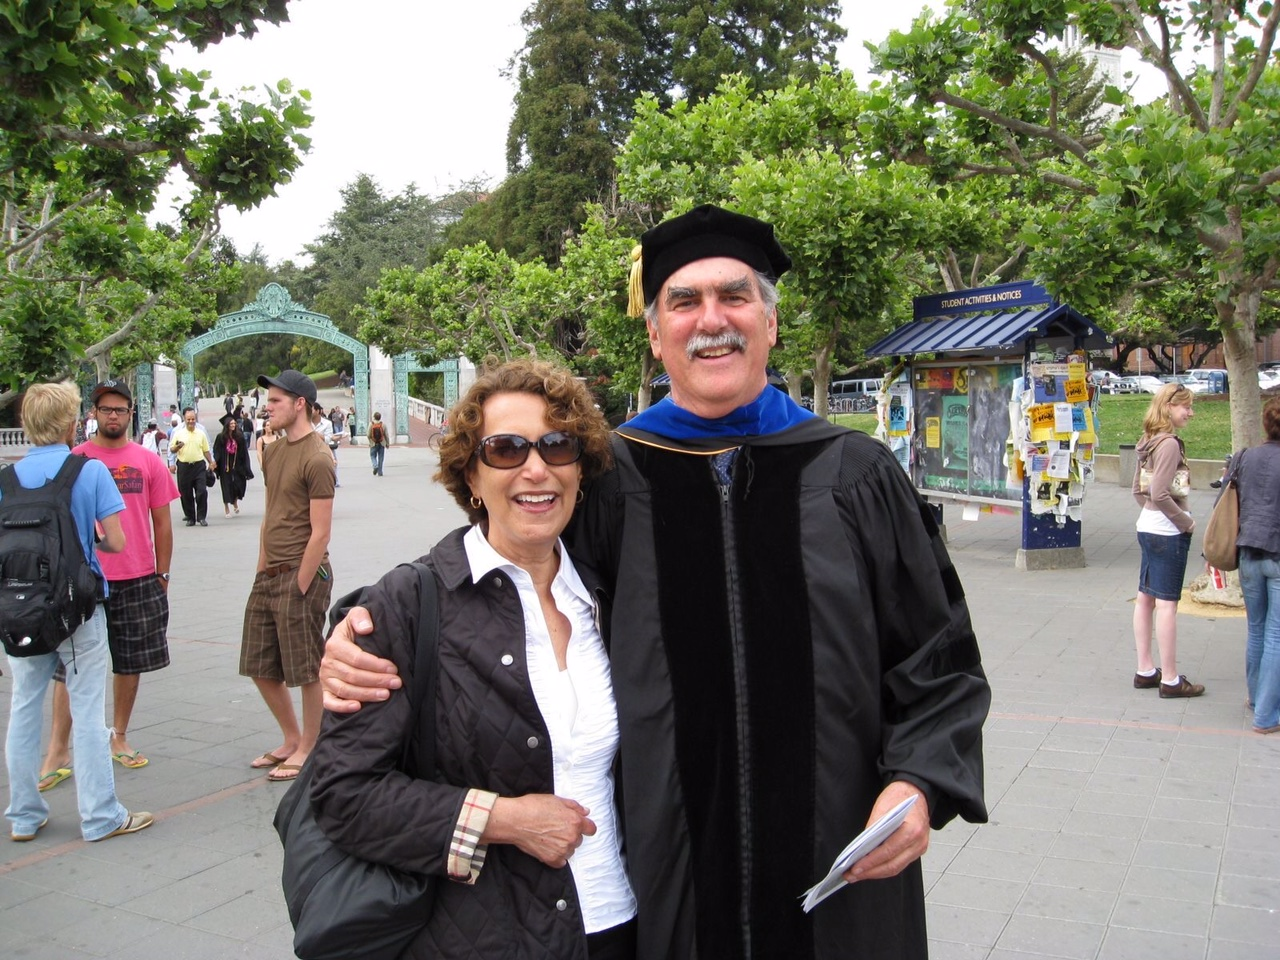 Jim, who is wearing his graduation cap and gown, hugs Gail. Sather Gate is in the background.